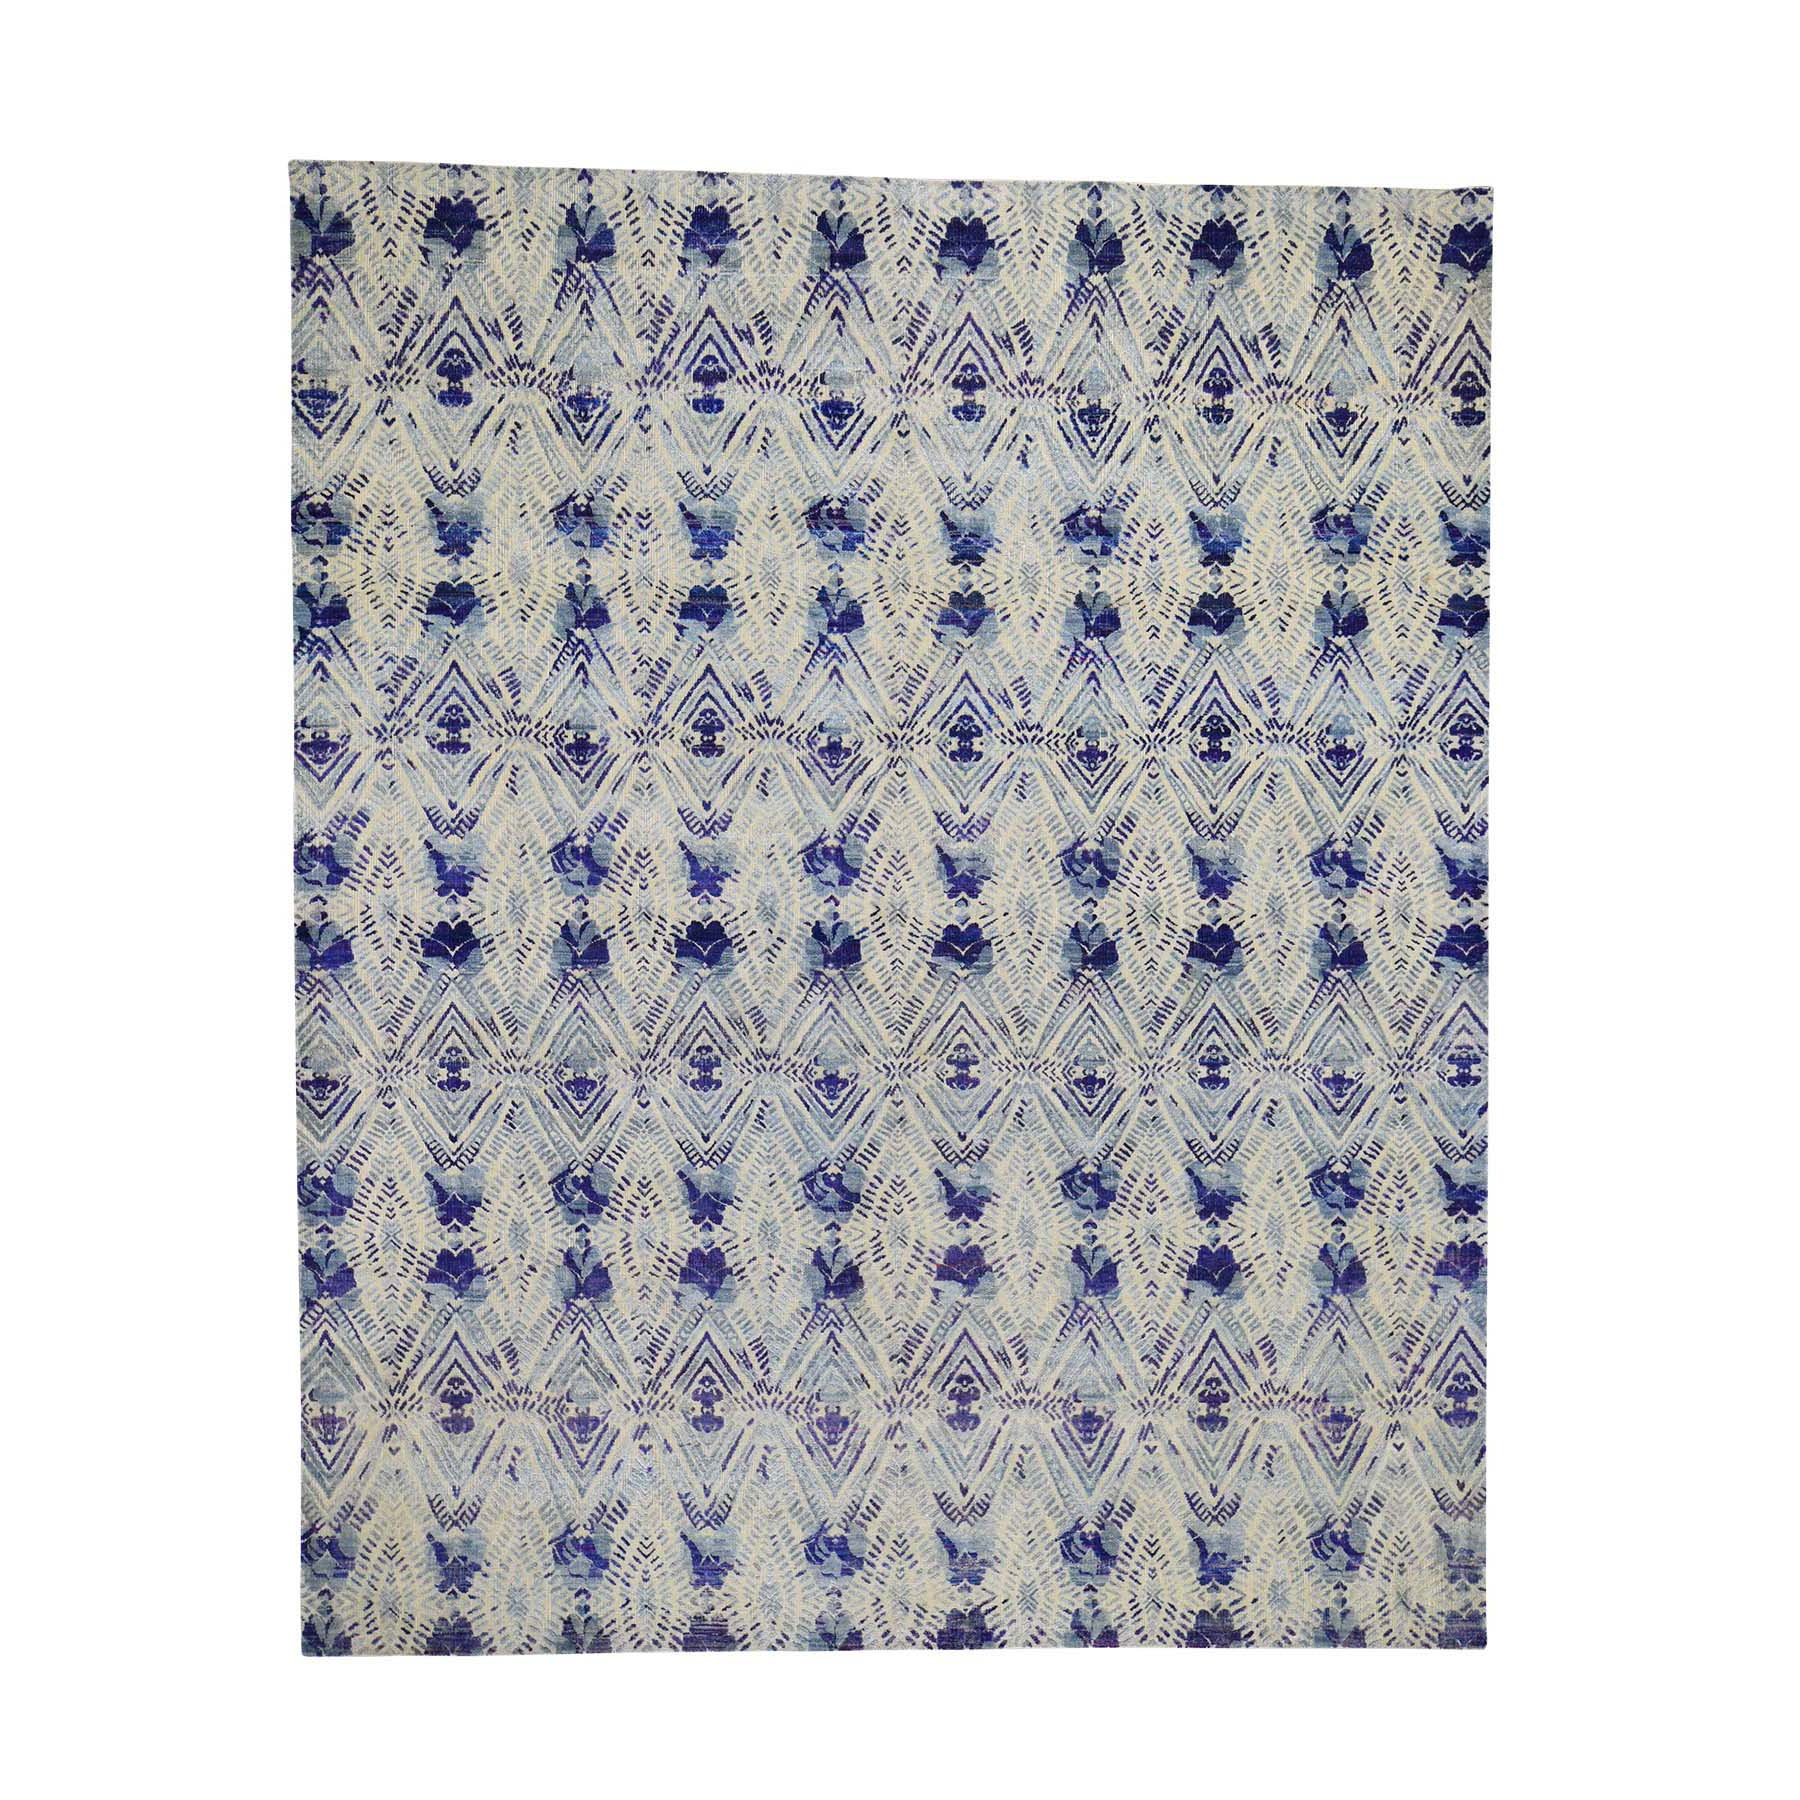 ikat and suzani design rugs LUV414153